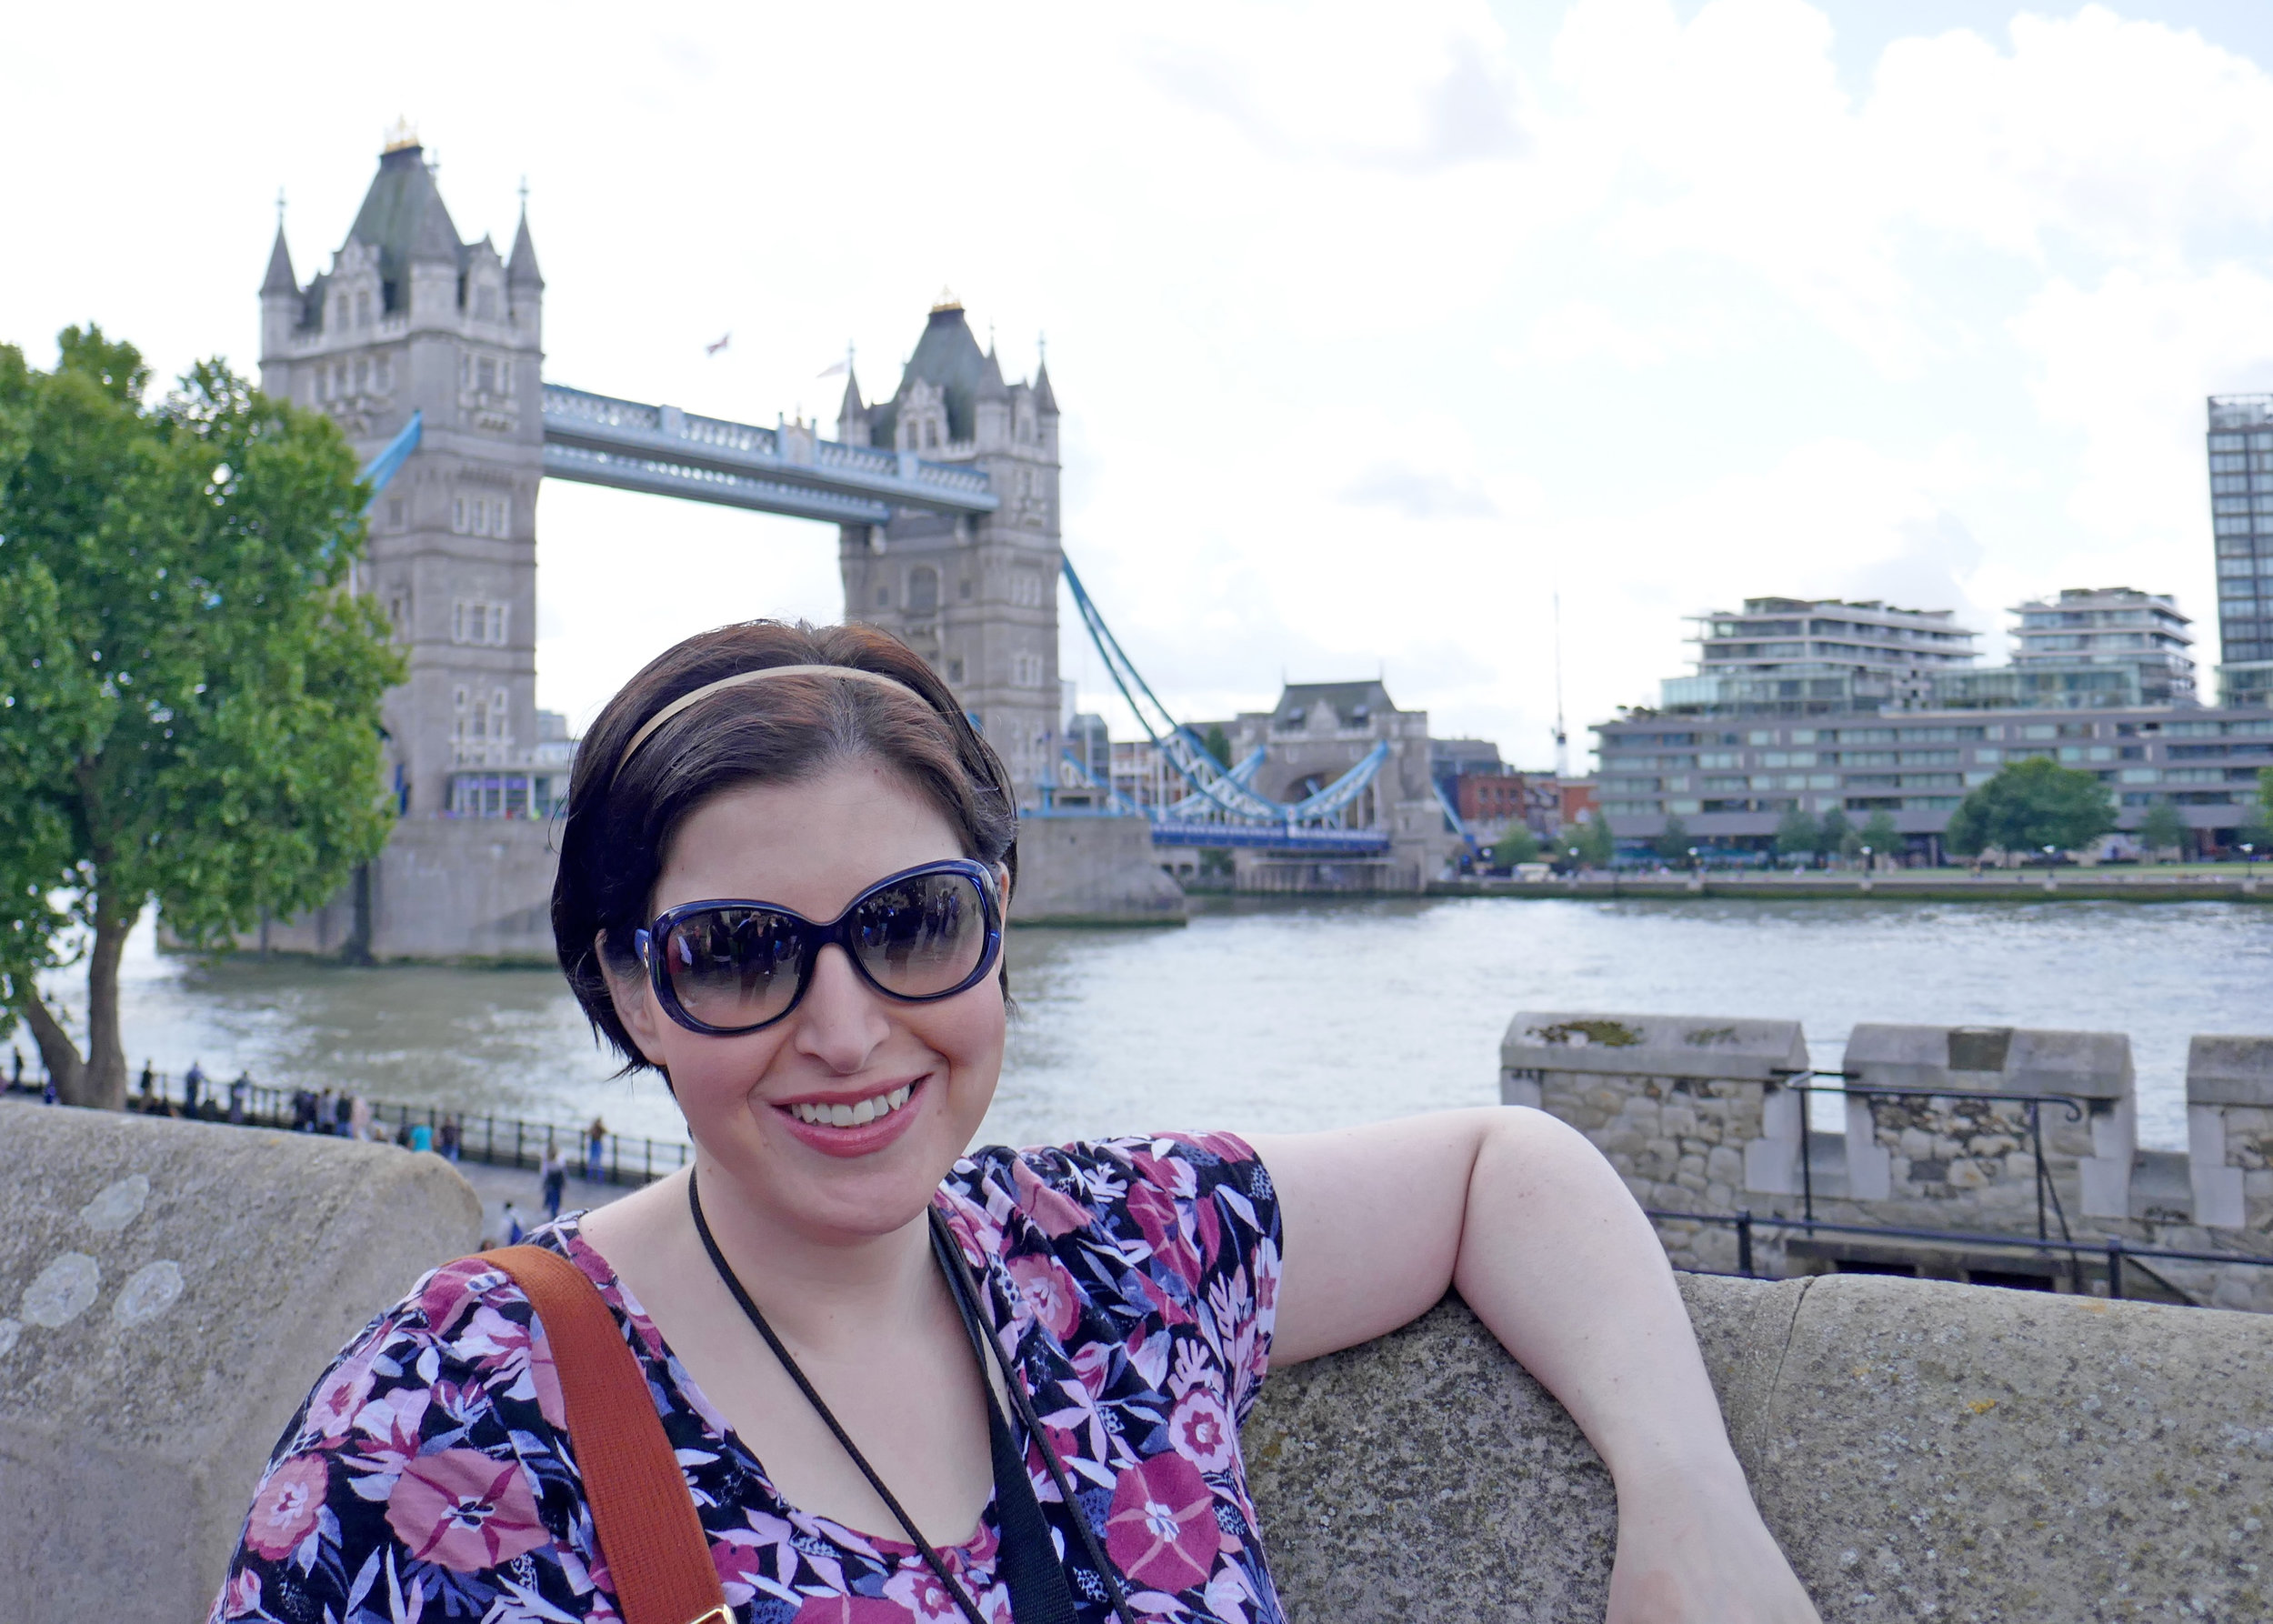 In front of Tower Bridge in London